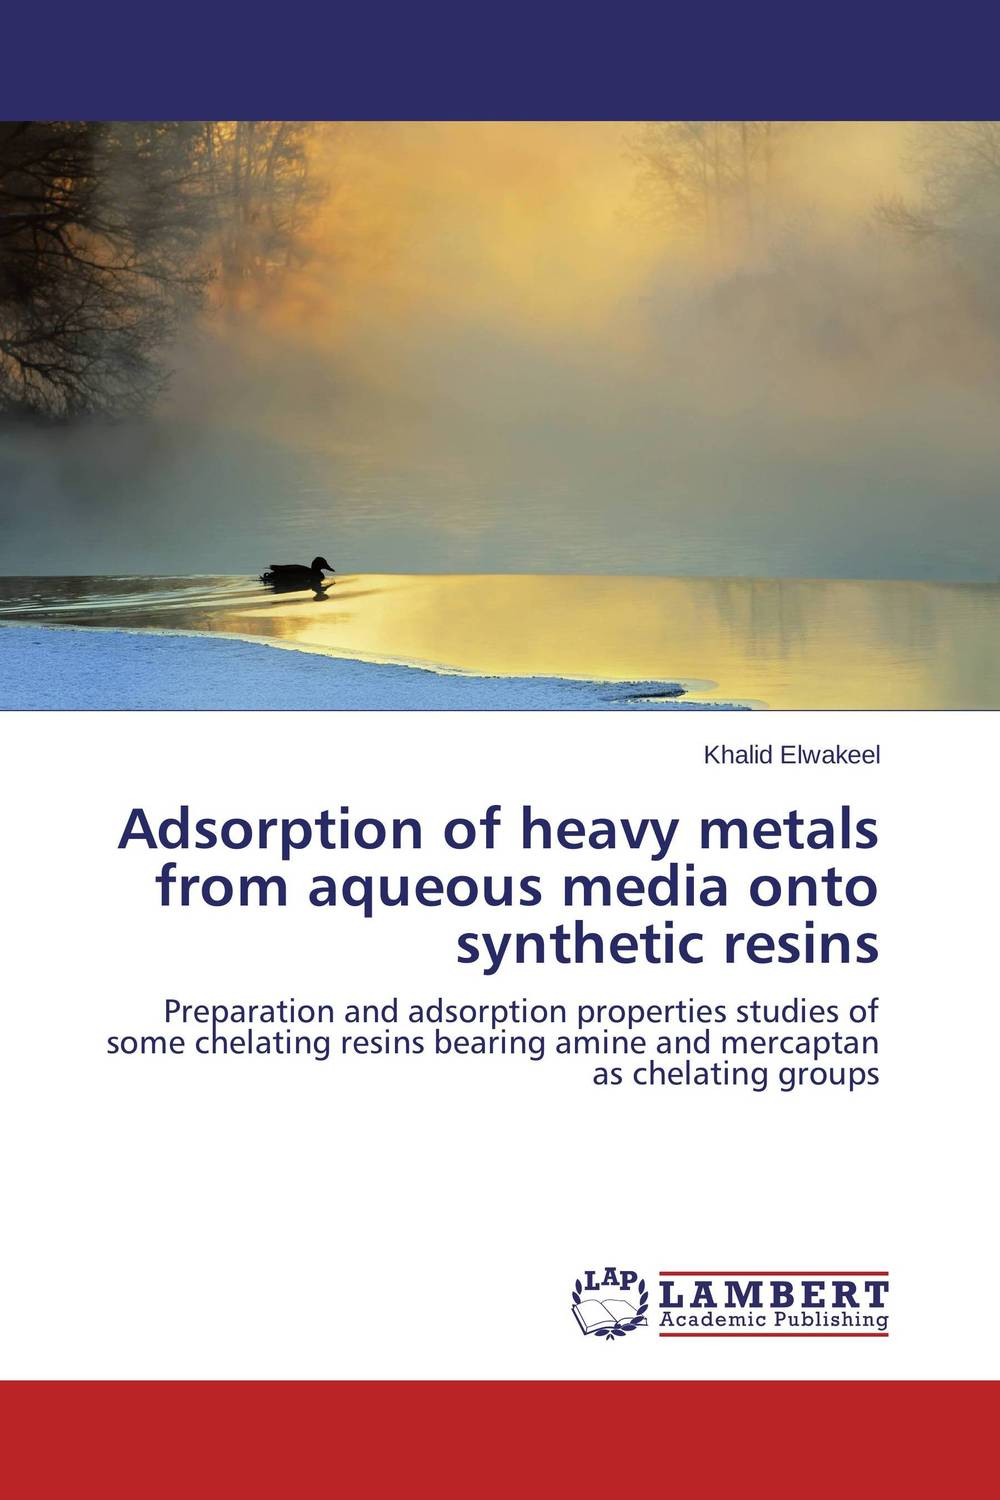 Adsorption of heavy metals from aqueous media onto synthetic resins marwan a ibrahim effect of heavy metals on haematological and testicular functions